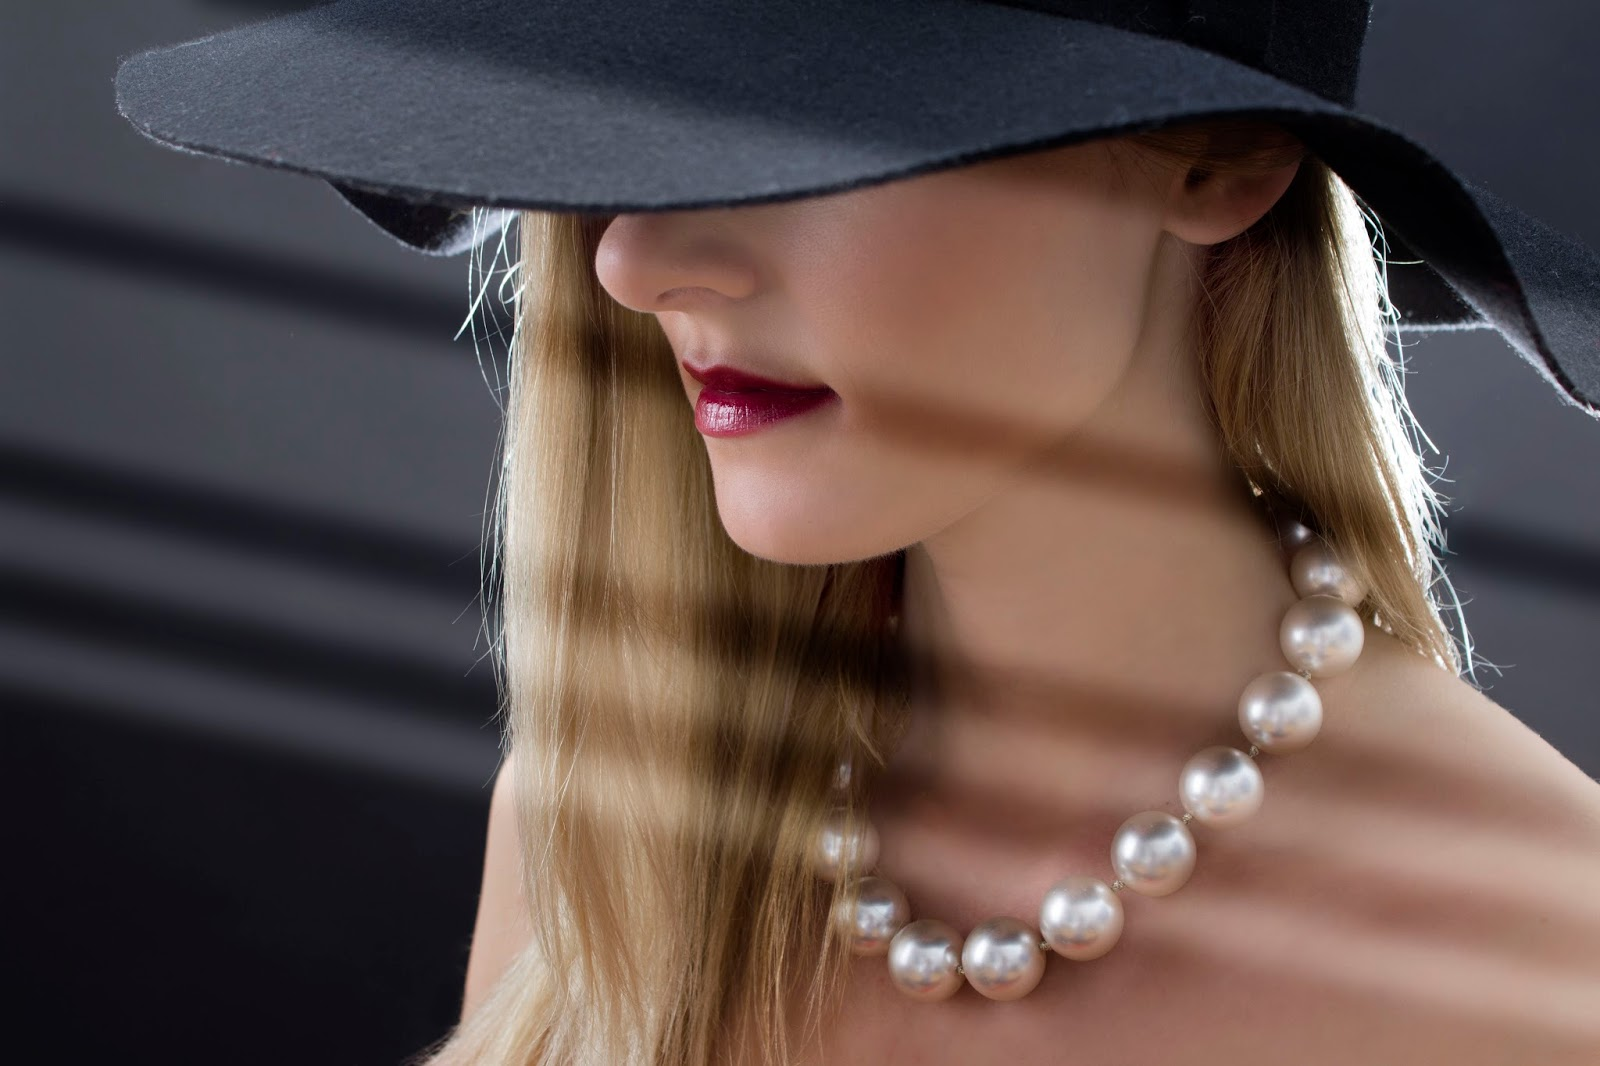 Image from Pixabay showing woman in hat and pearls